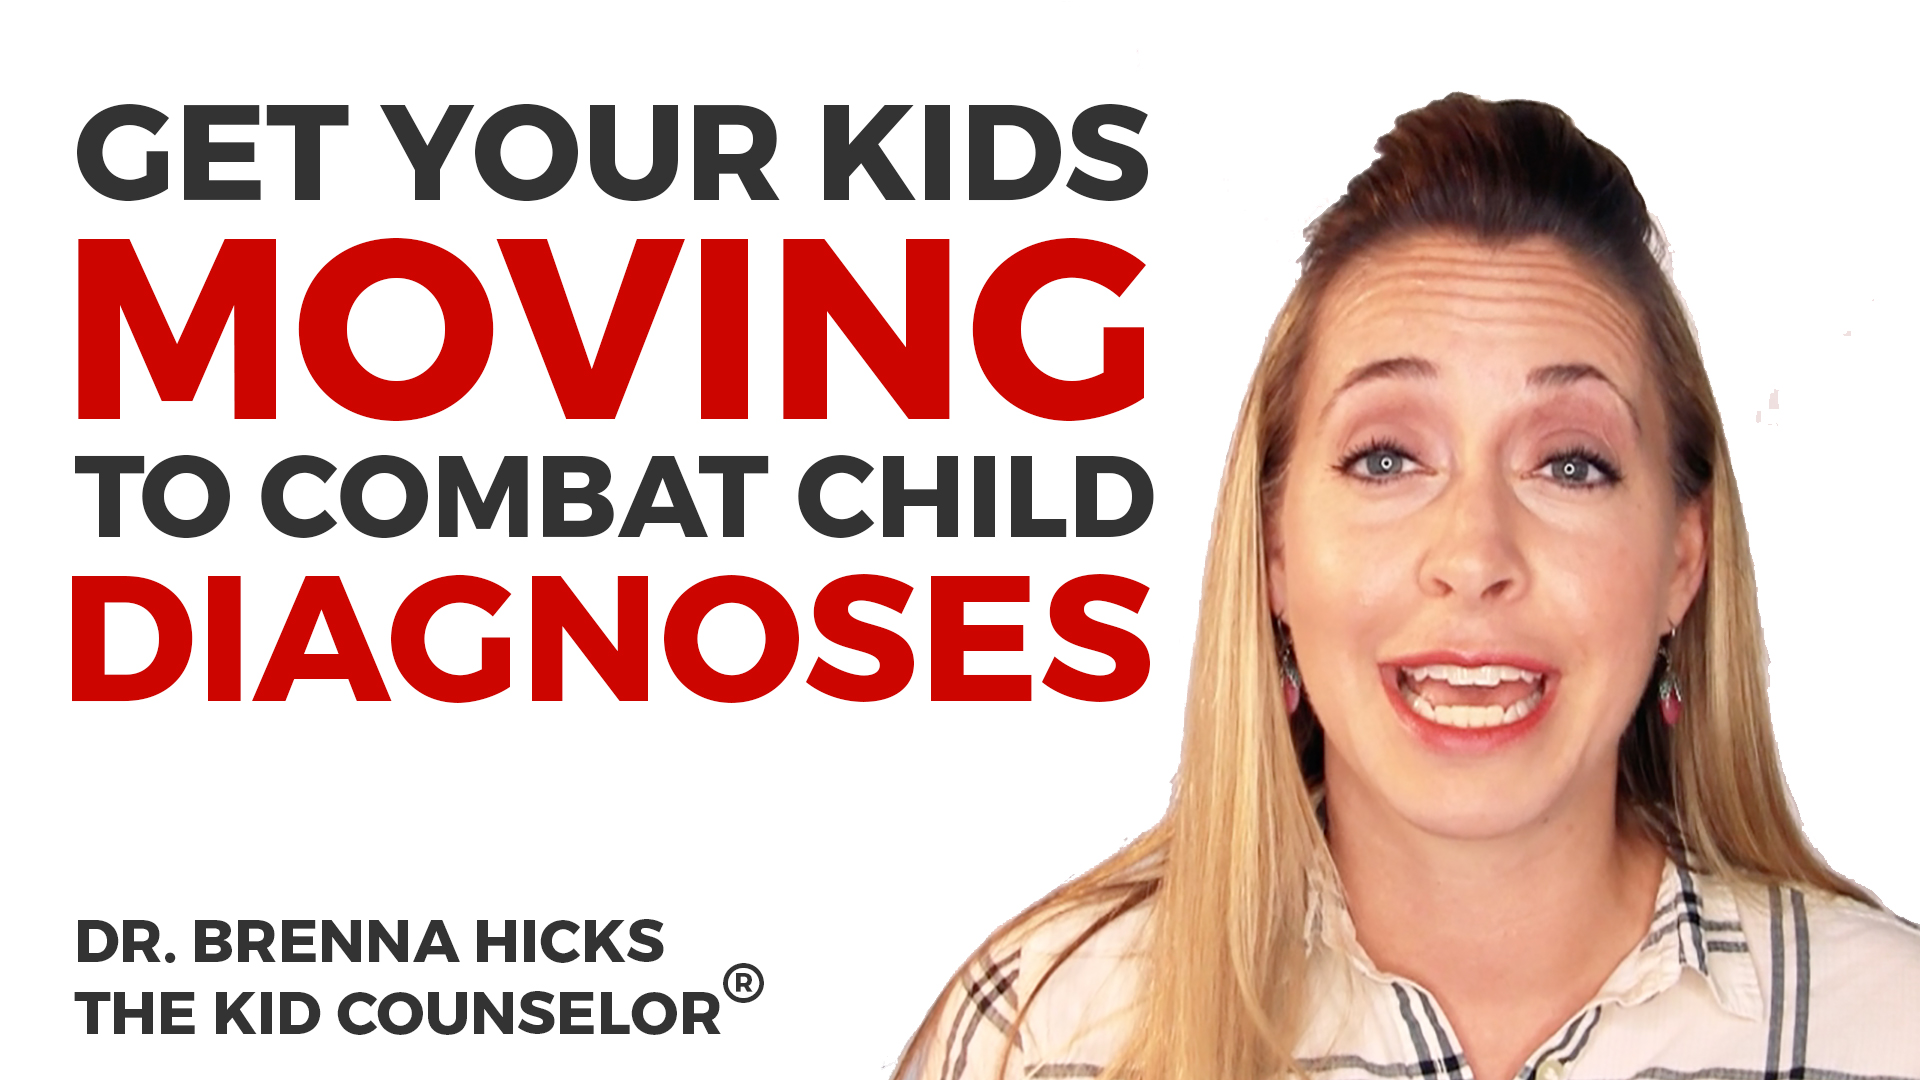 Get Your Kids Moving to Combat Diagnoses!